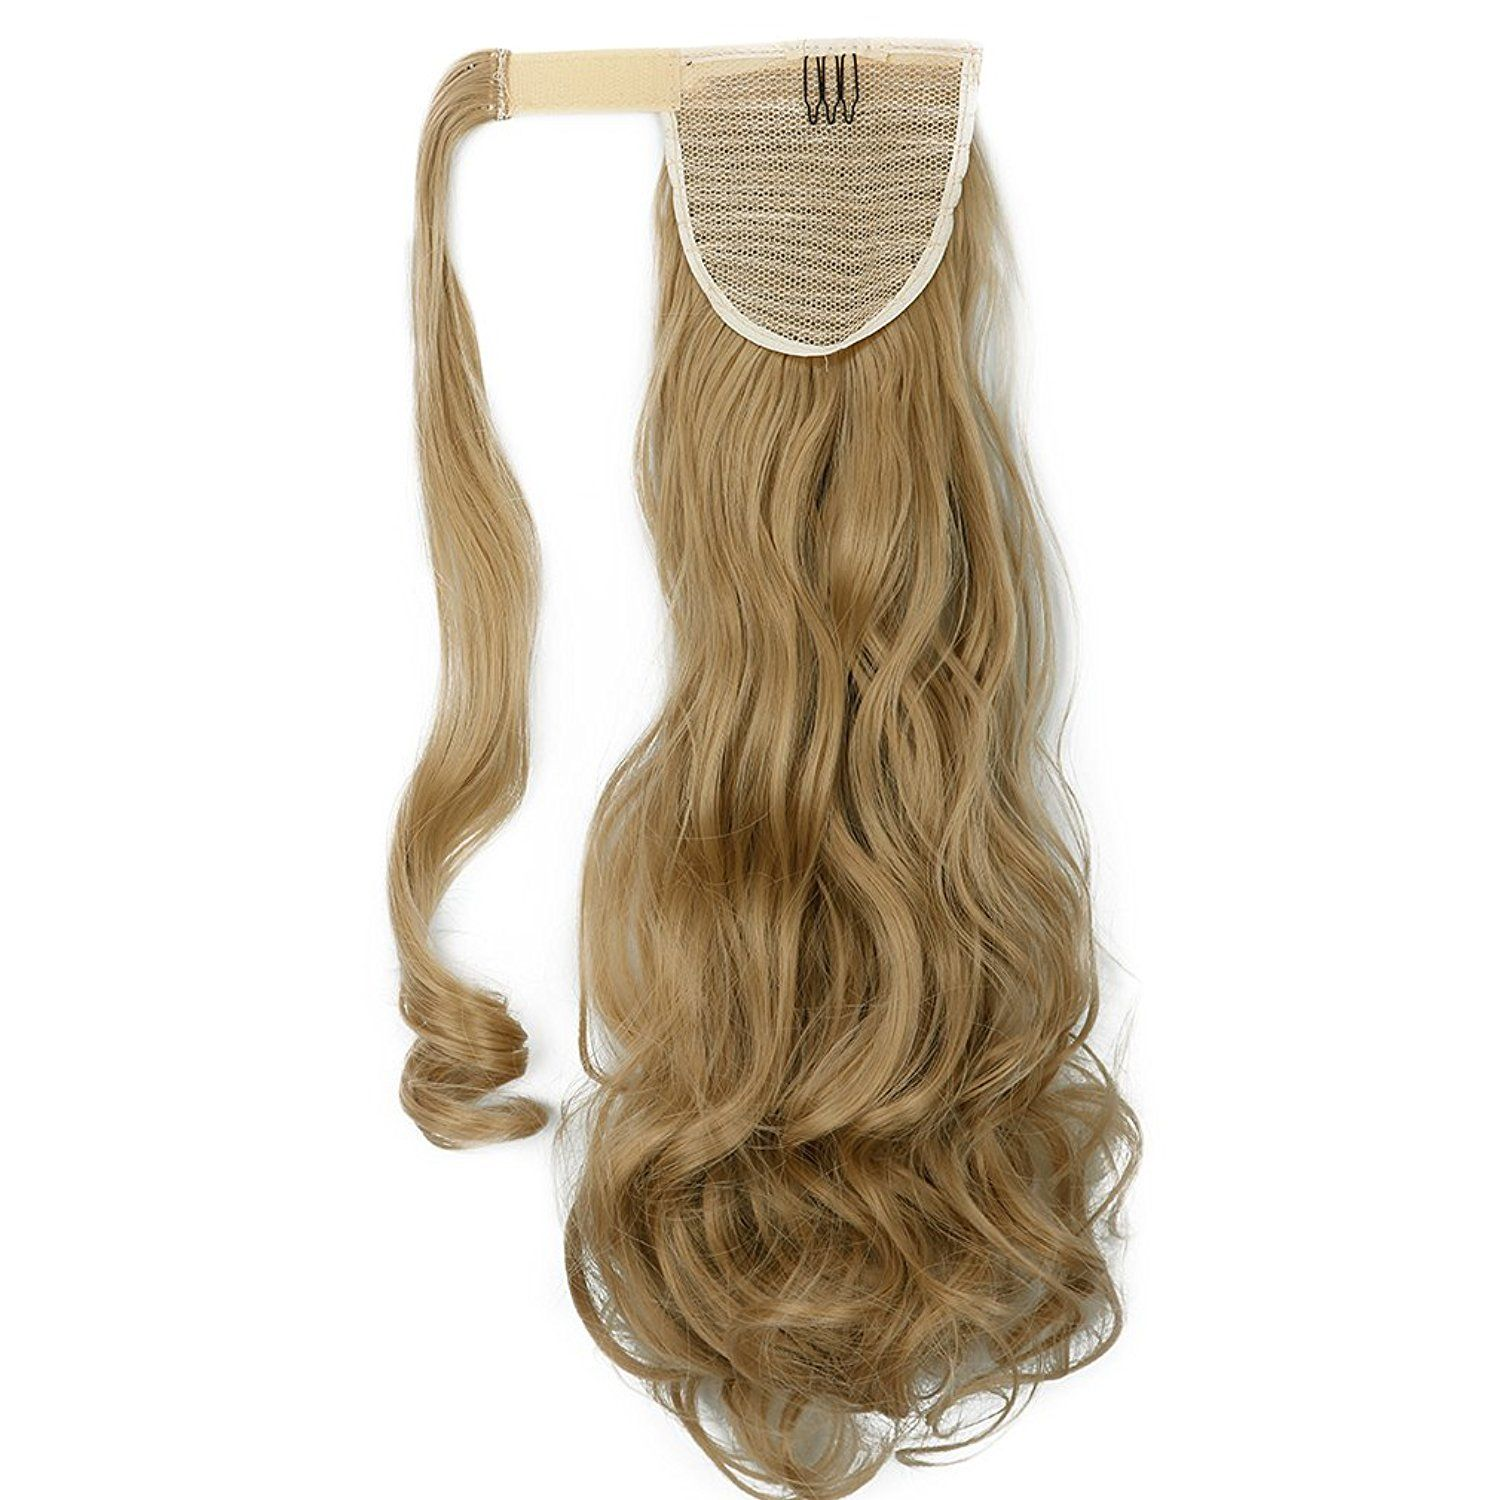 18 24 Synthetic Long Curly Straight Wrap Around Ponytail Clip in Hair Extensions >>> This is an Amazon Affiliate link. For more information, visit image link.